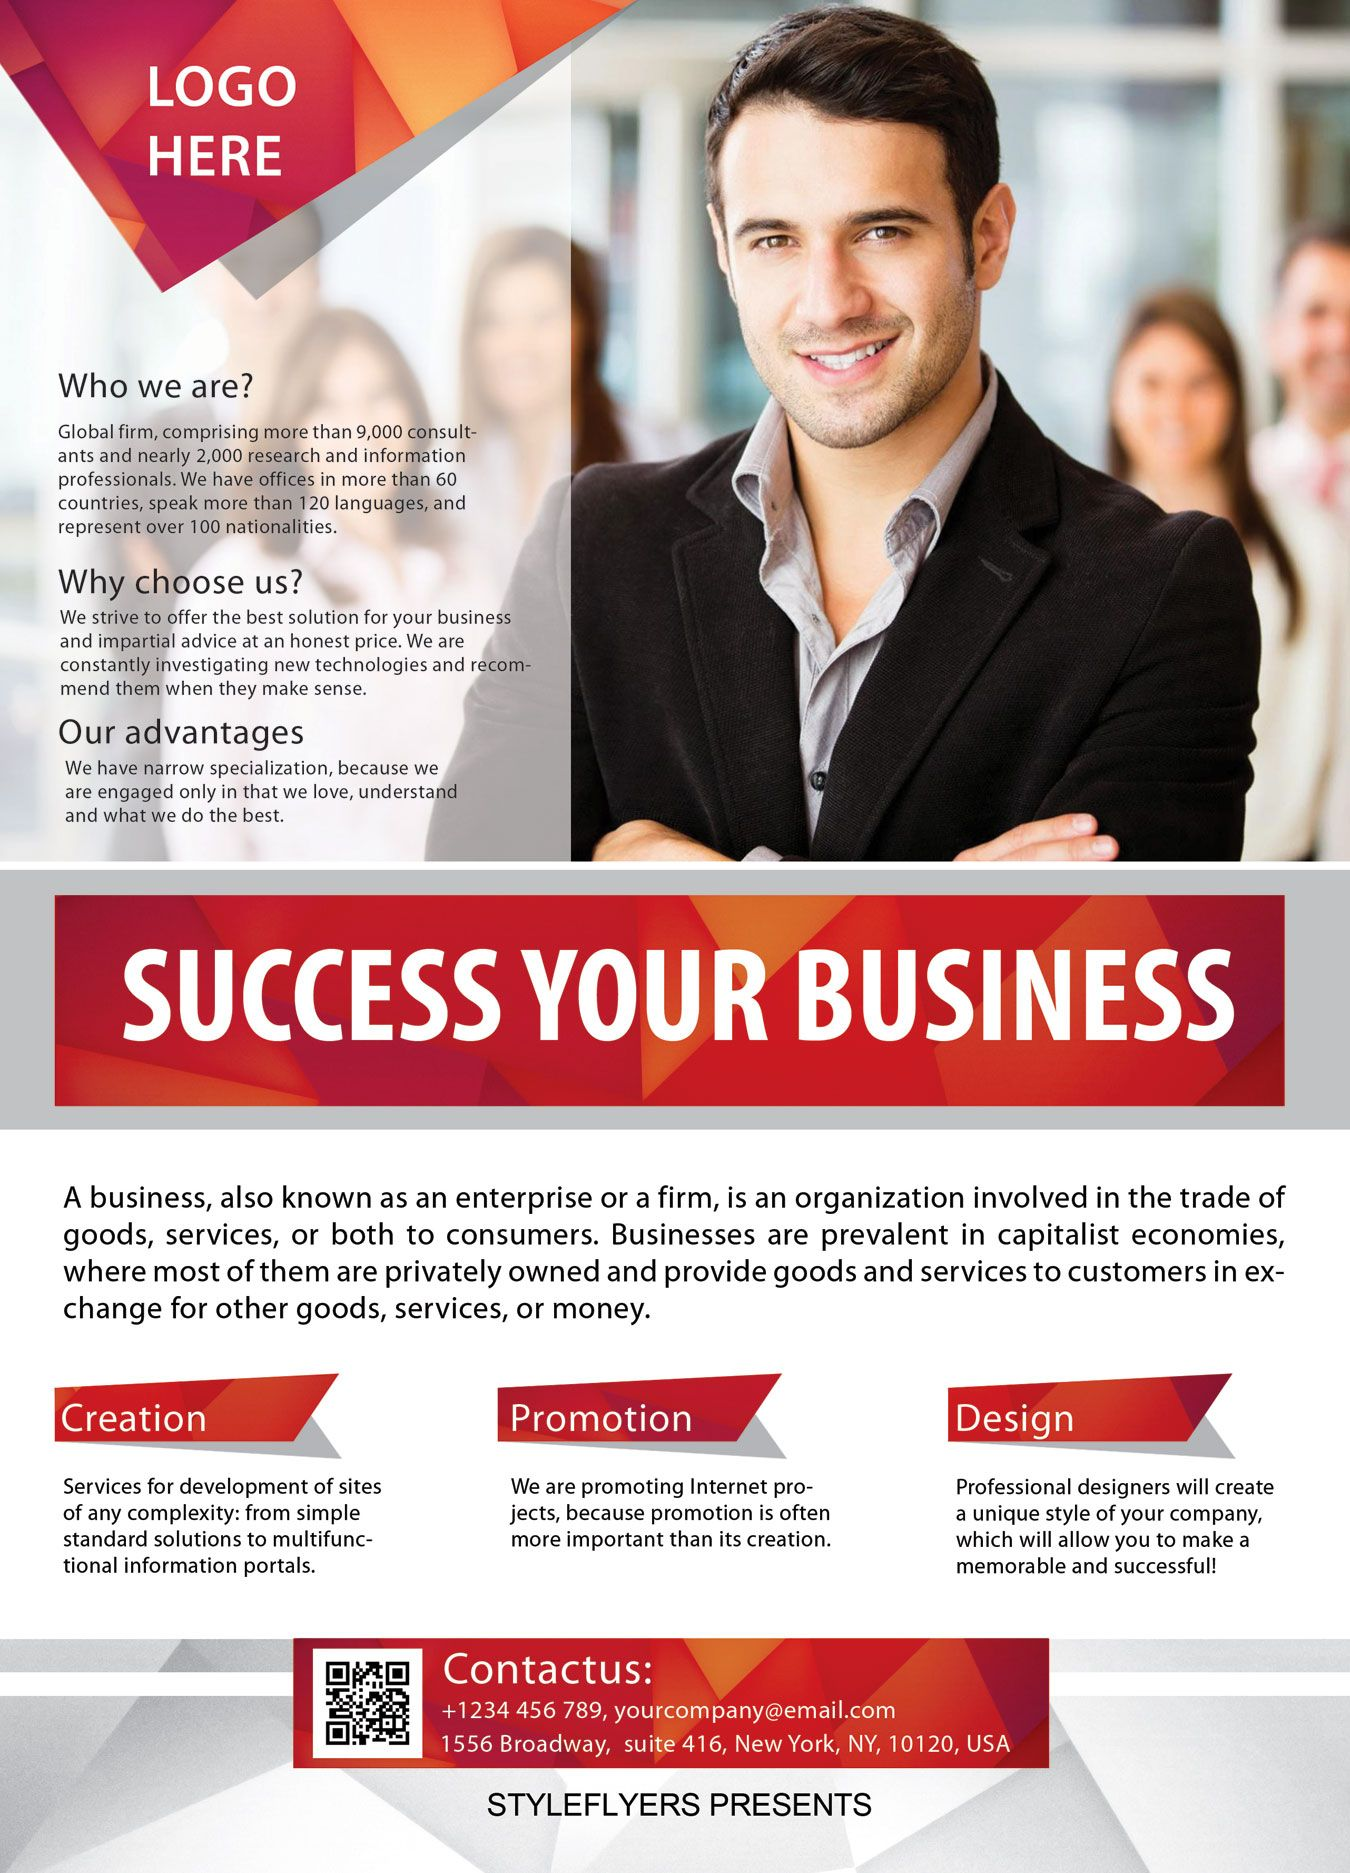 A4 business flyer template free download 2424 flyers pinterest great advertisement for your business training download it right now business training friedricerecipe Image collections